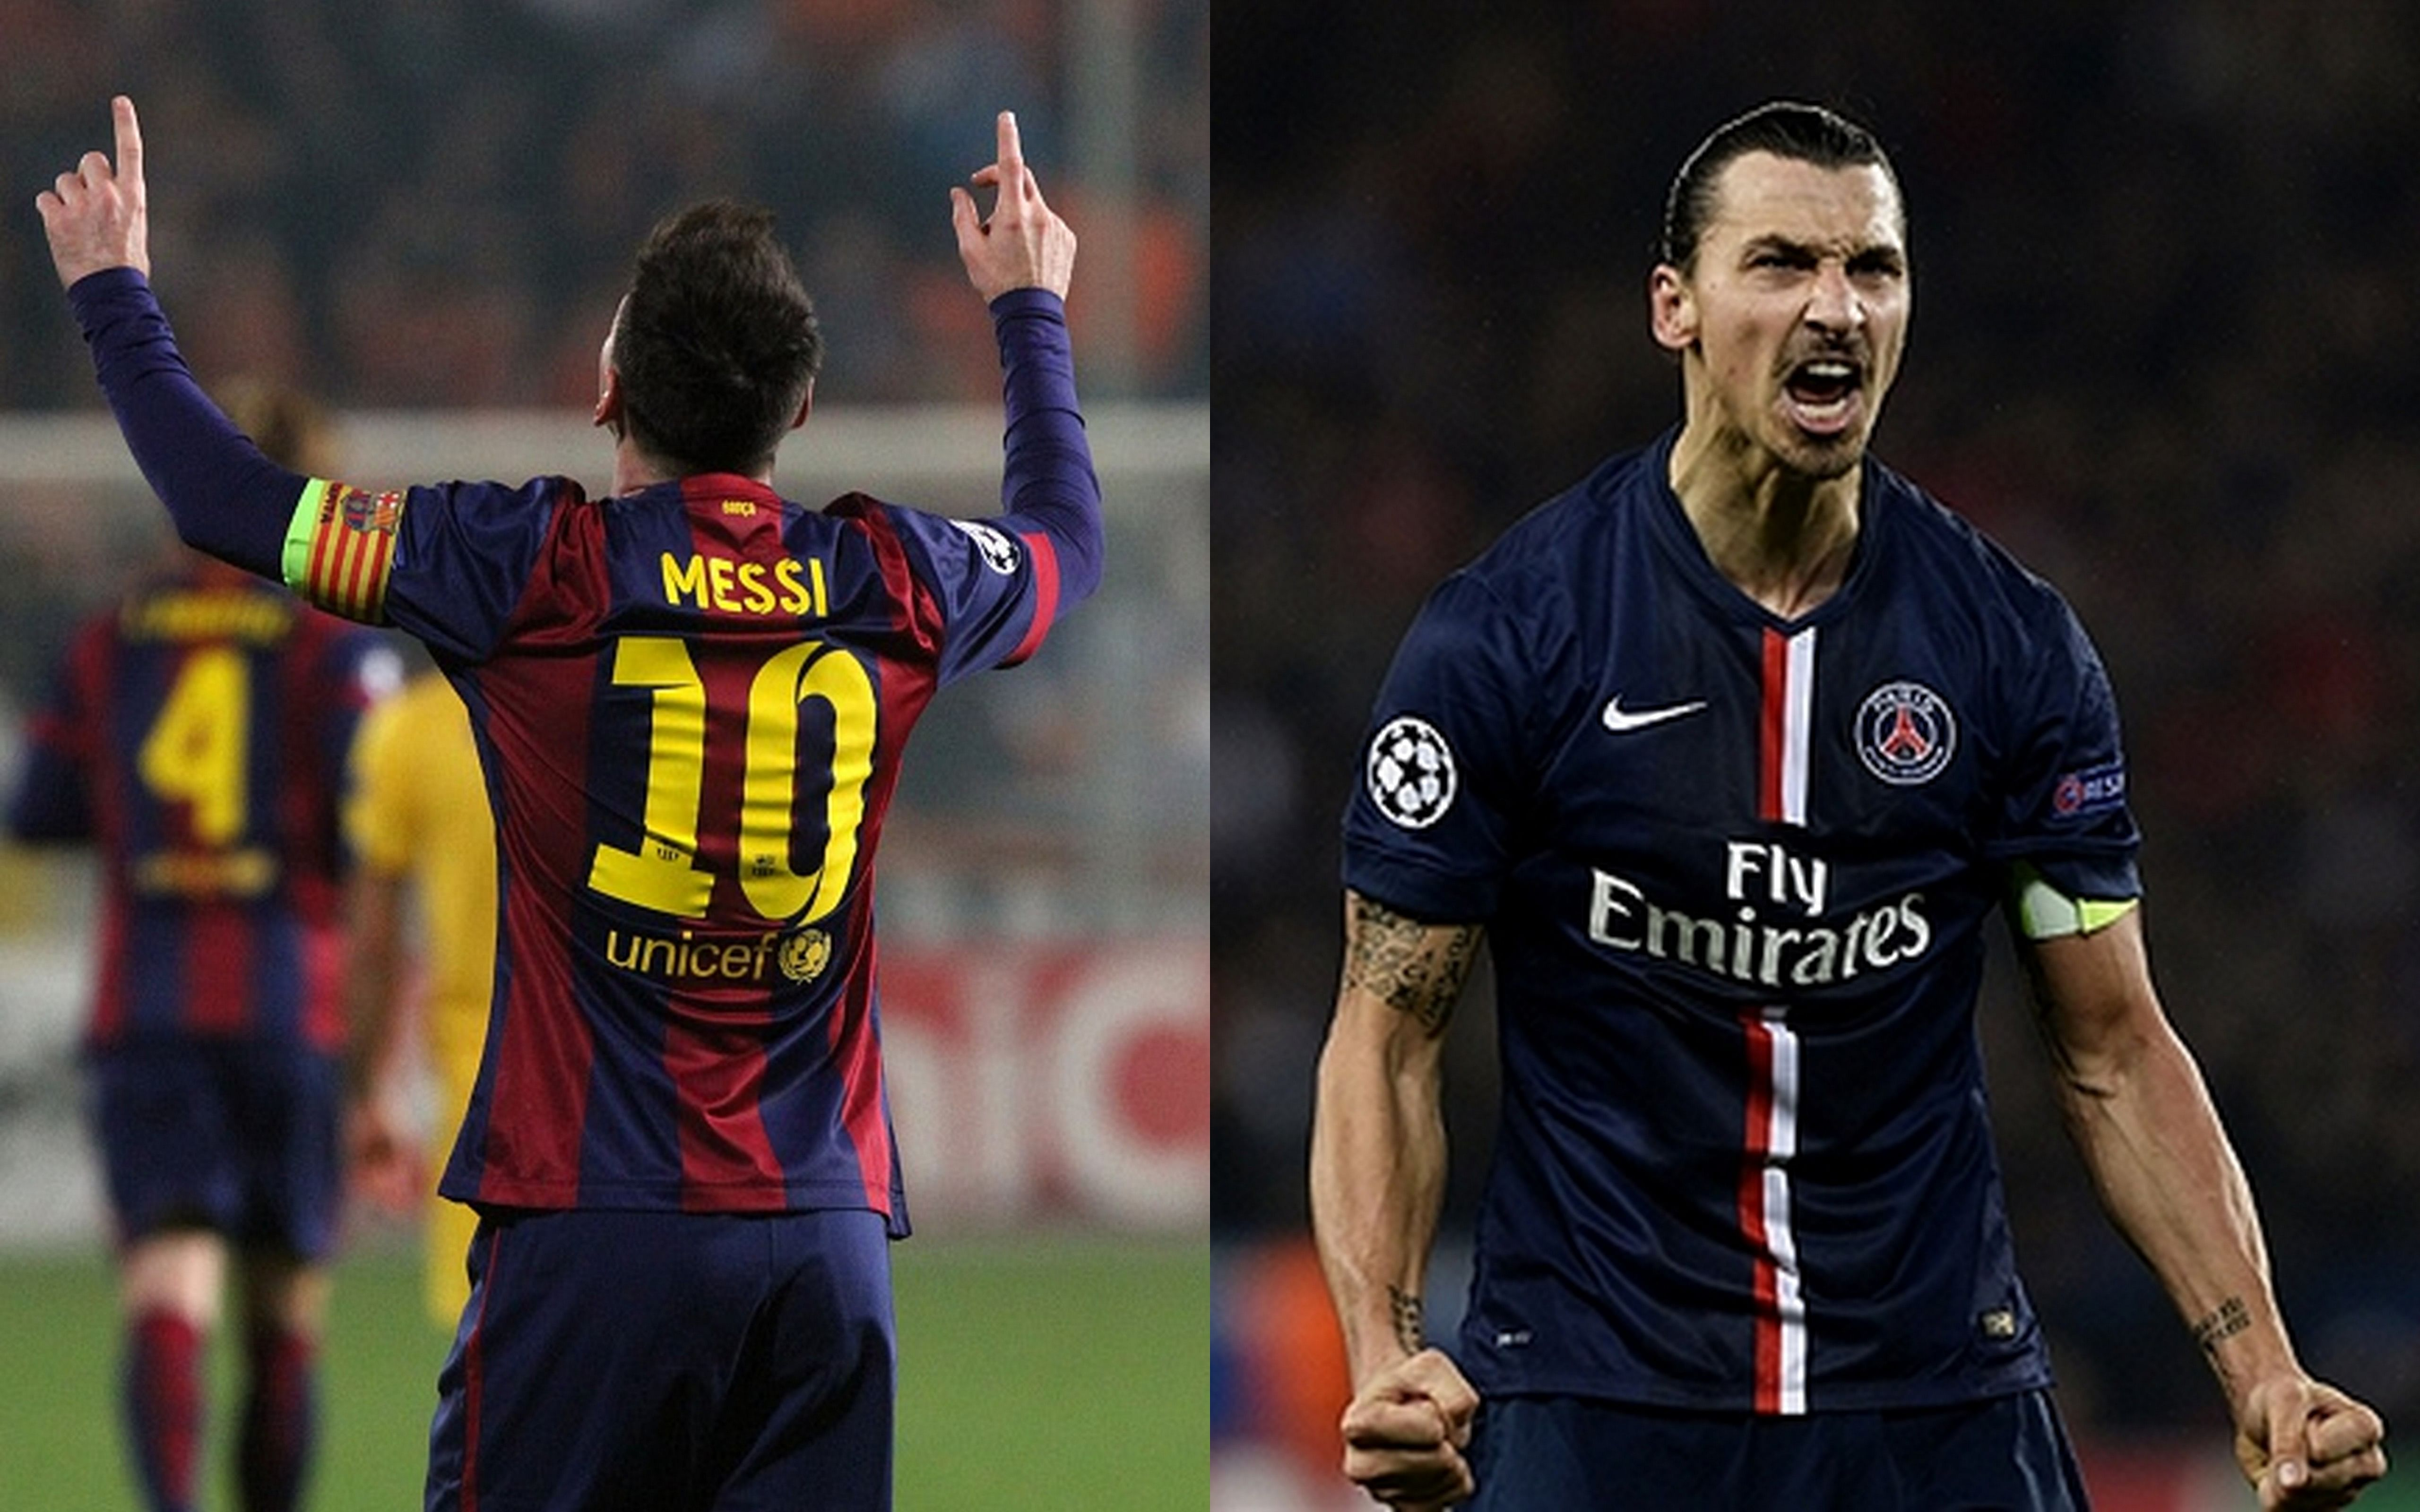 Highlights: Barcelona and PSG claim victories - Golden night for Lionel Messi and Zlatan Ibrahimovic